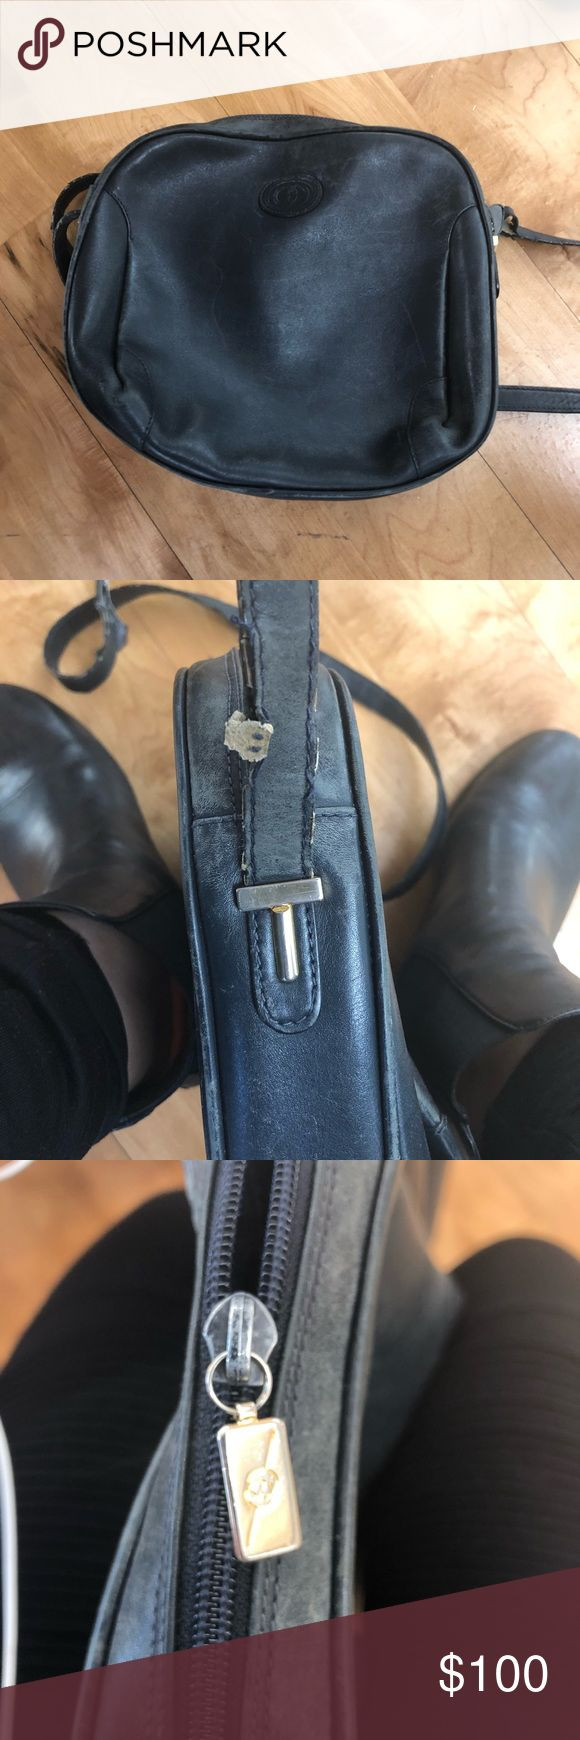 Vintage Gucci navy shoulder bag. Needs new strap Vintage, classic navy blue cross body bag with gold hardware. Ive never seen anything like it!!! And the bag itself is perfectly broken in.   The bag itself is in good condition however the strap needs replacing. Don't buy if you're looking for a ready to wear bag. It needs a bit of love. Gucci Bags Crossbody Bags